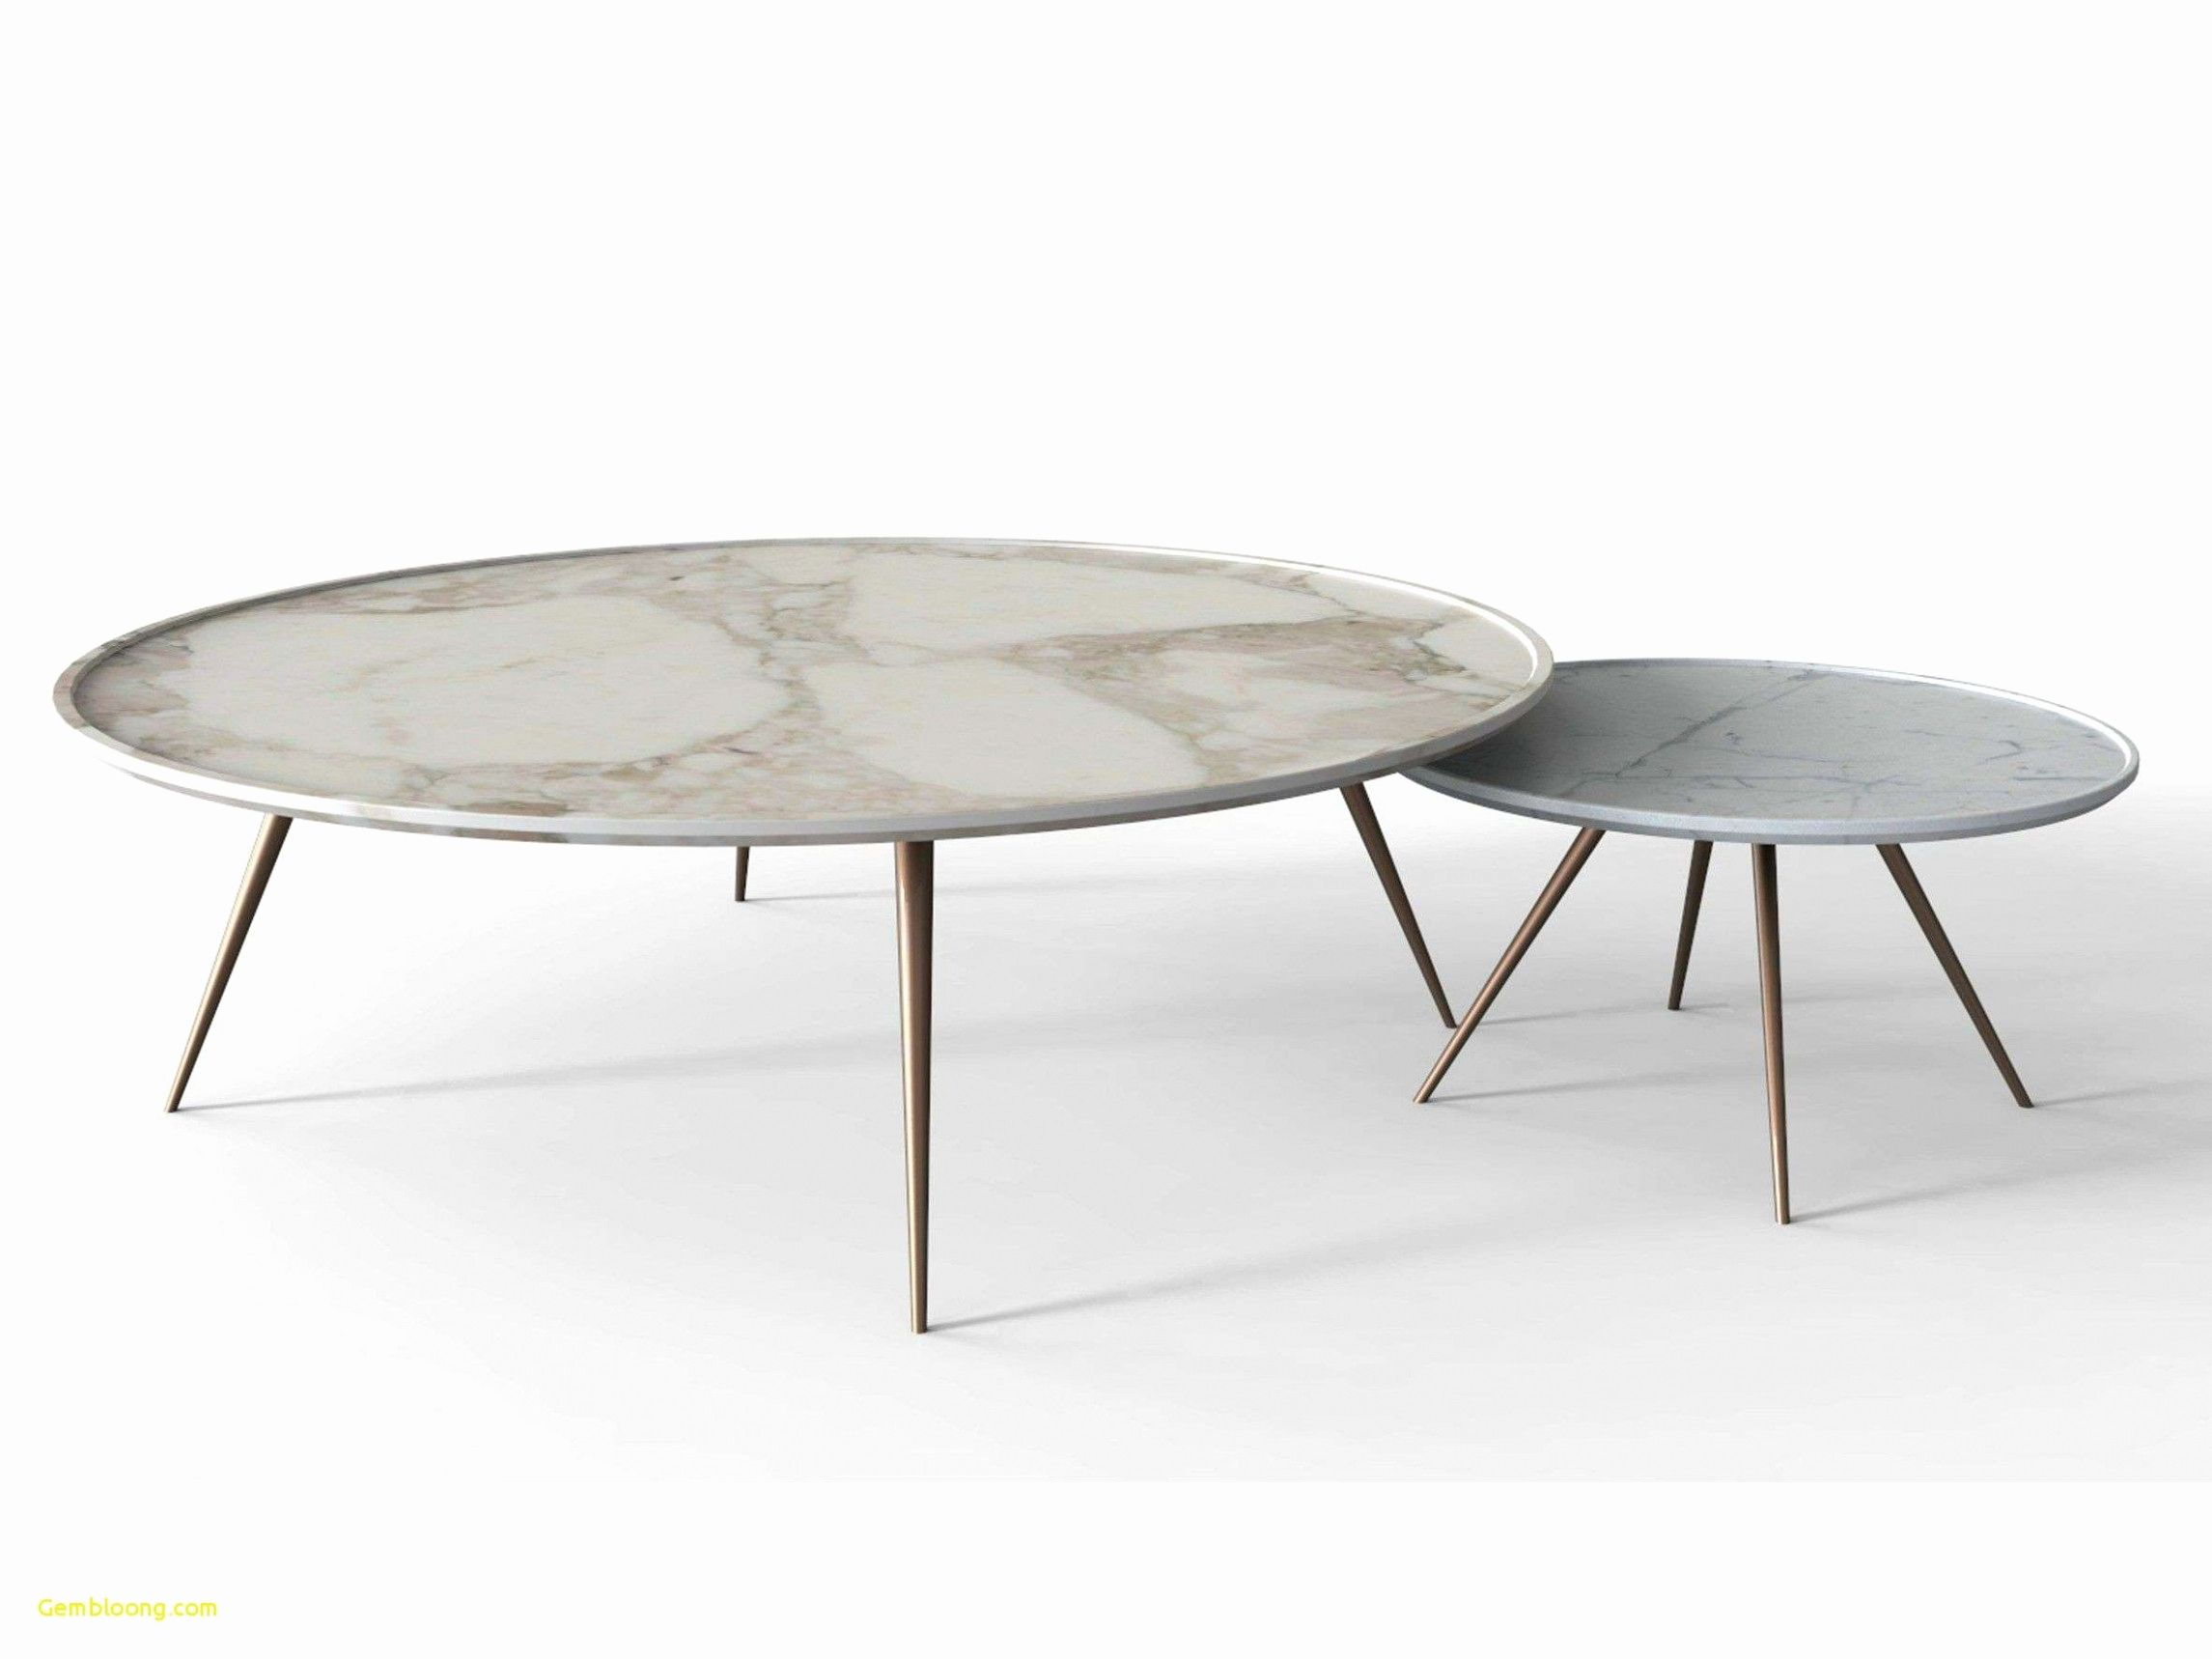 Beautiful Marble Coffee Tables White Round Coffee Table Stone Coffee Table Round Glass Coffee Table [ 1718 x 2291 Pixel ]